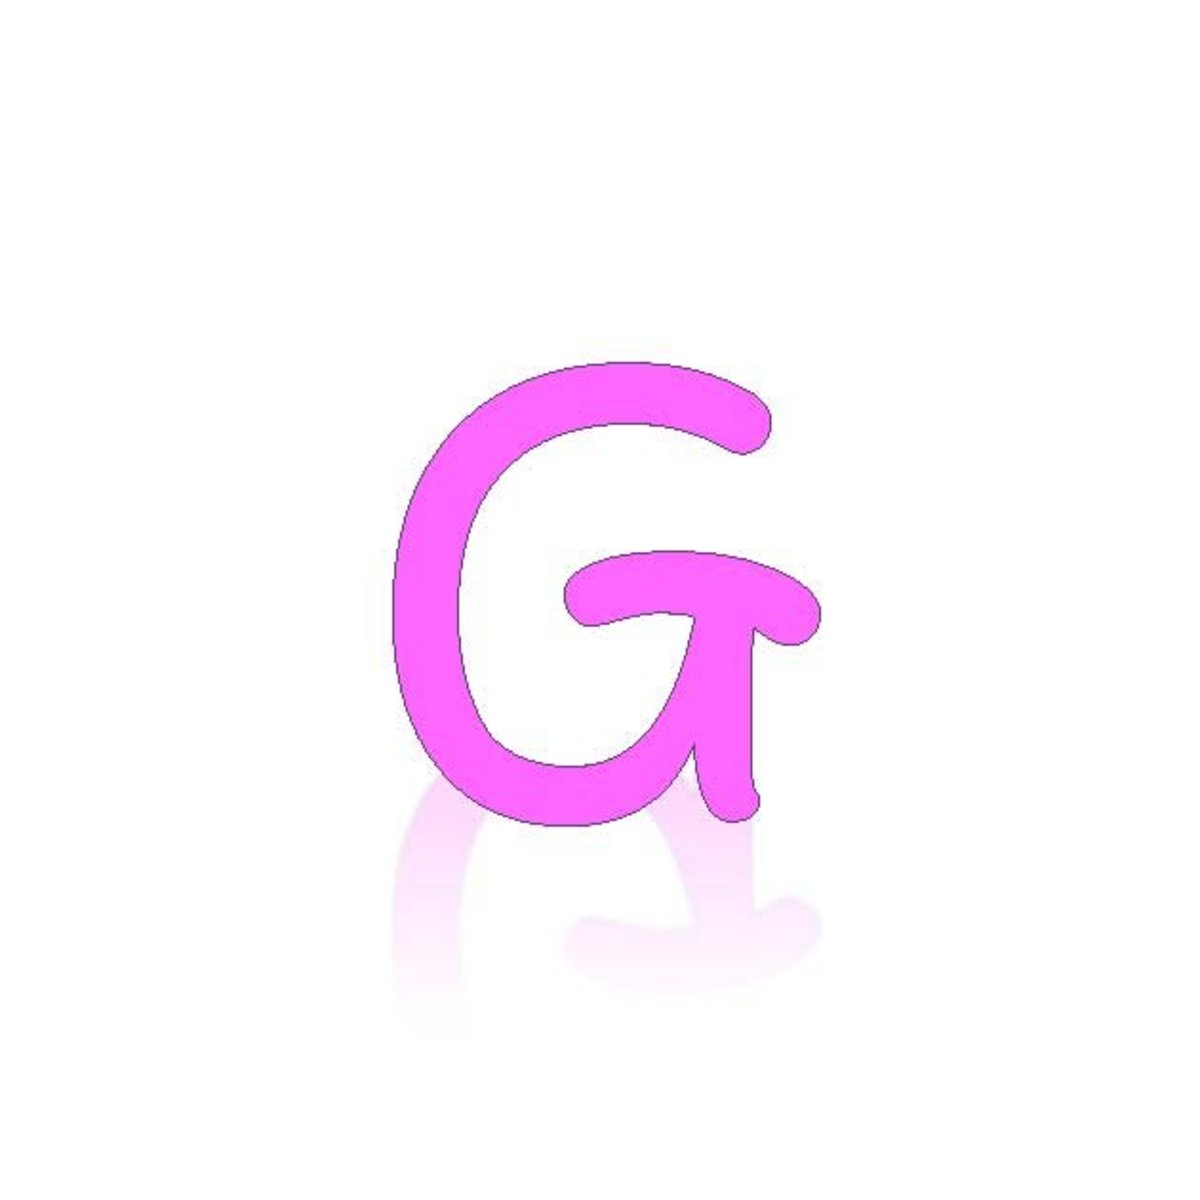 Acrostic Name Poems for Girls Names Starting with G | HubPages